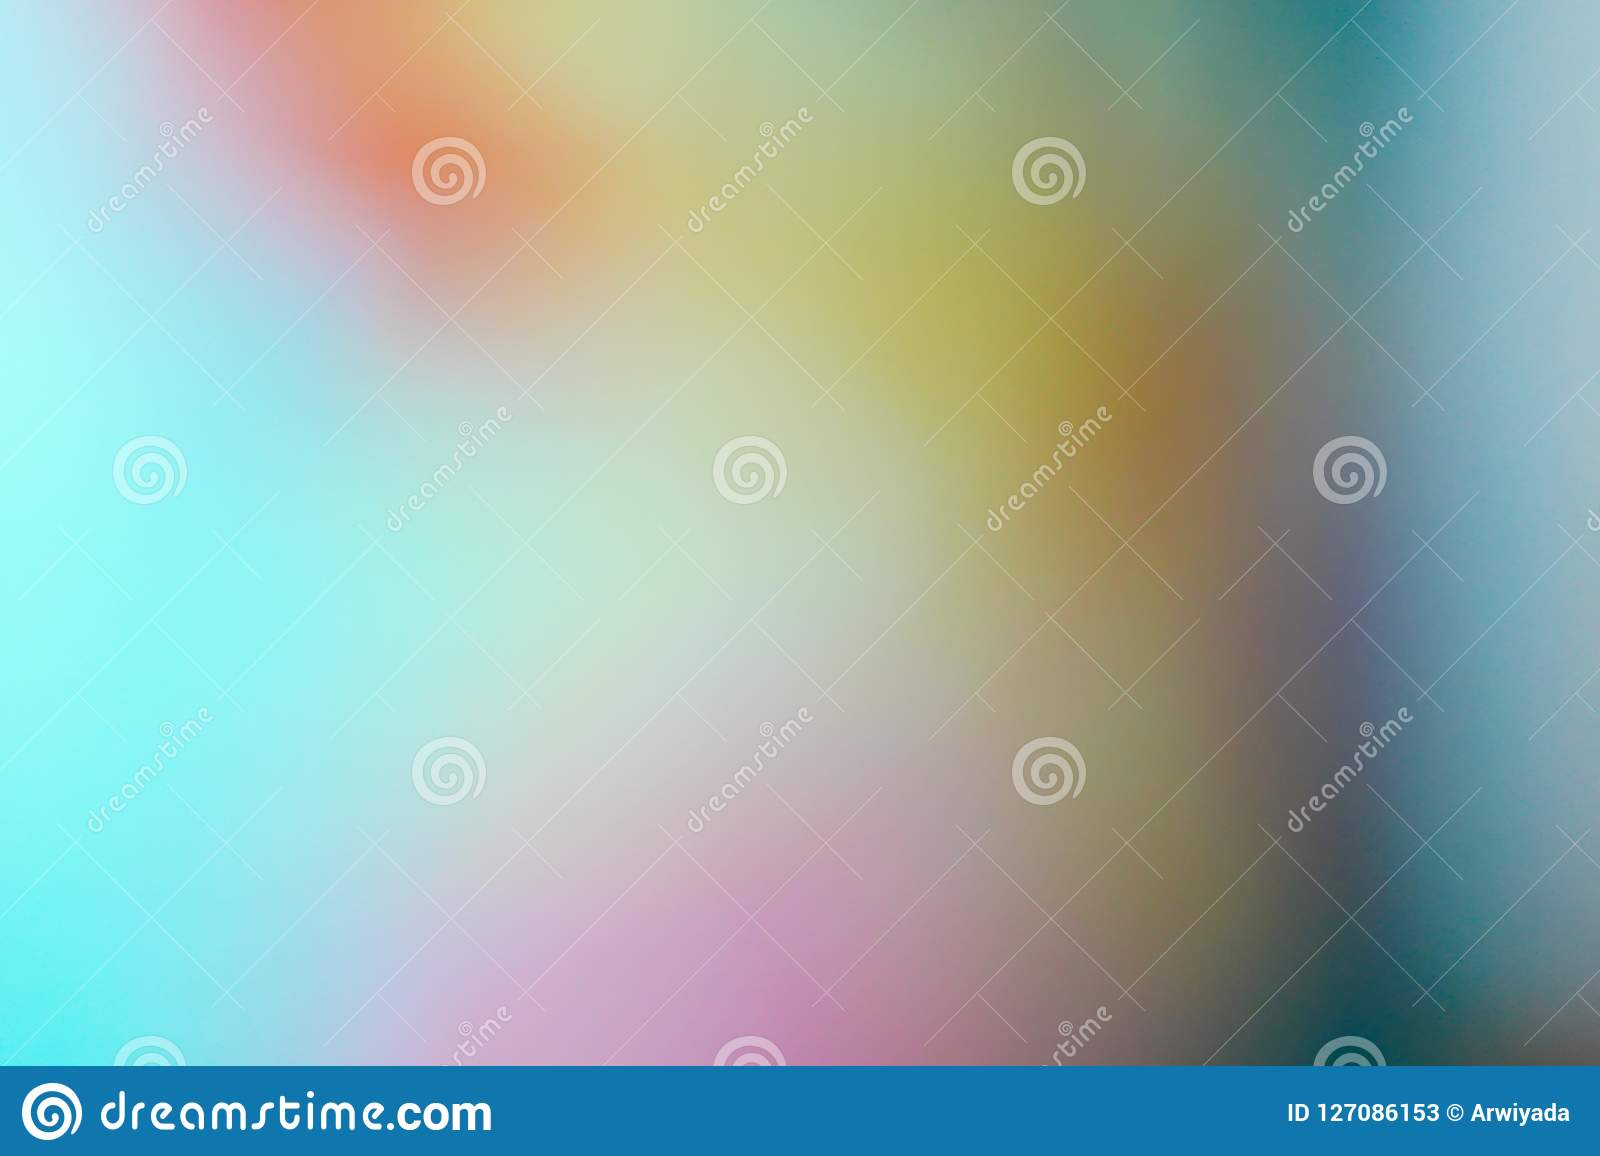 Blurred colourful background abstract blur gradient with bright